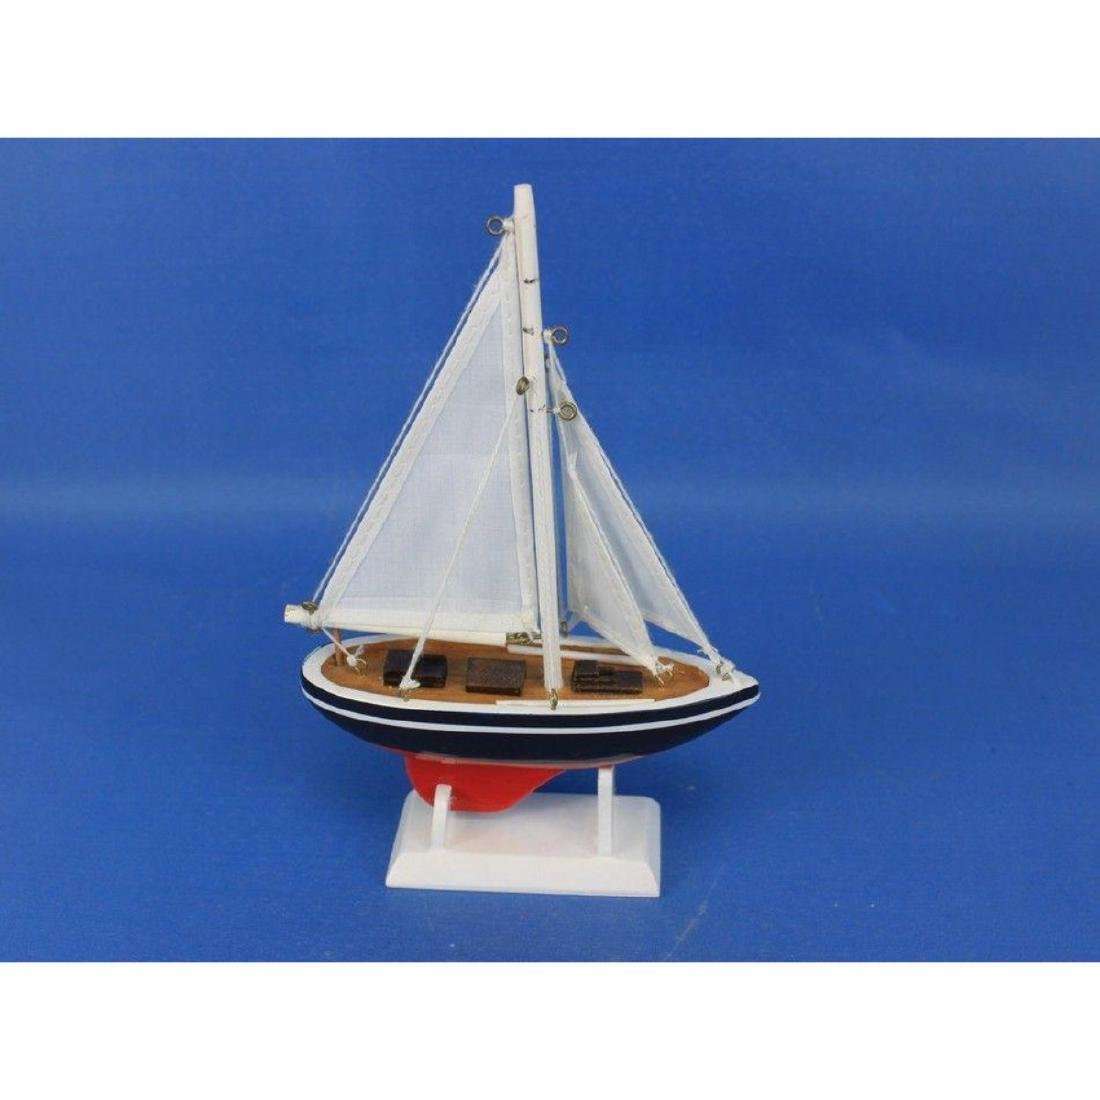 "Wooden American Sailer Model Sailboat Decoration 9"" - 6"